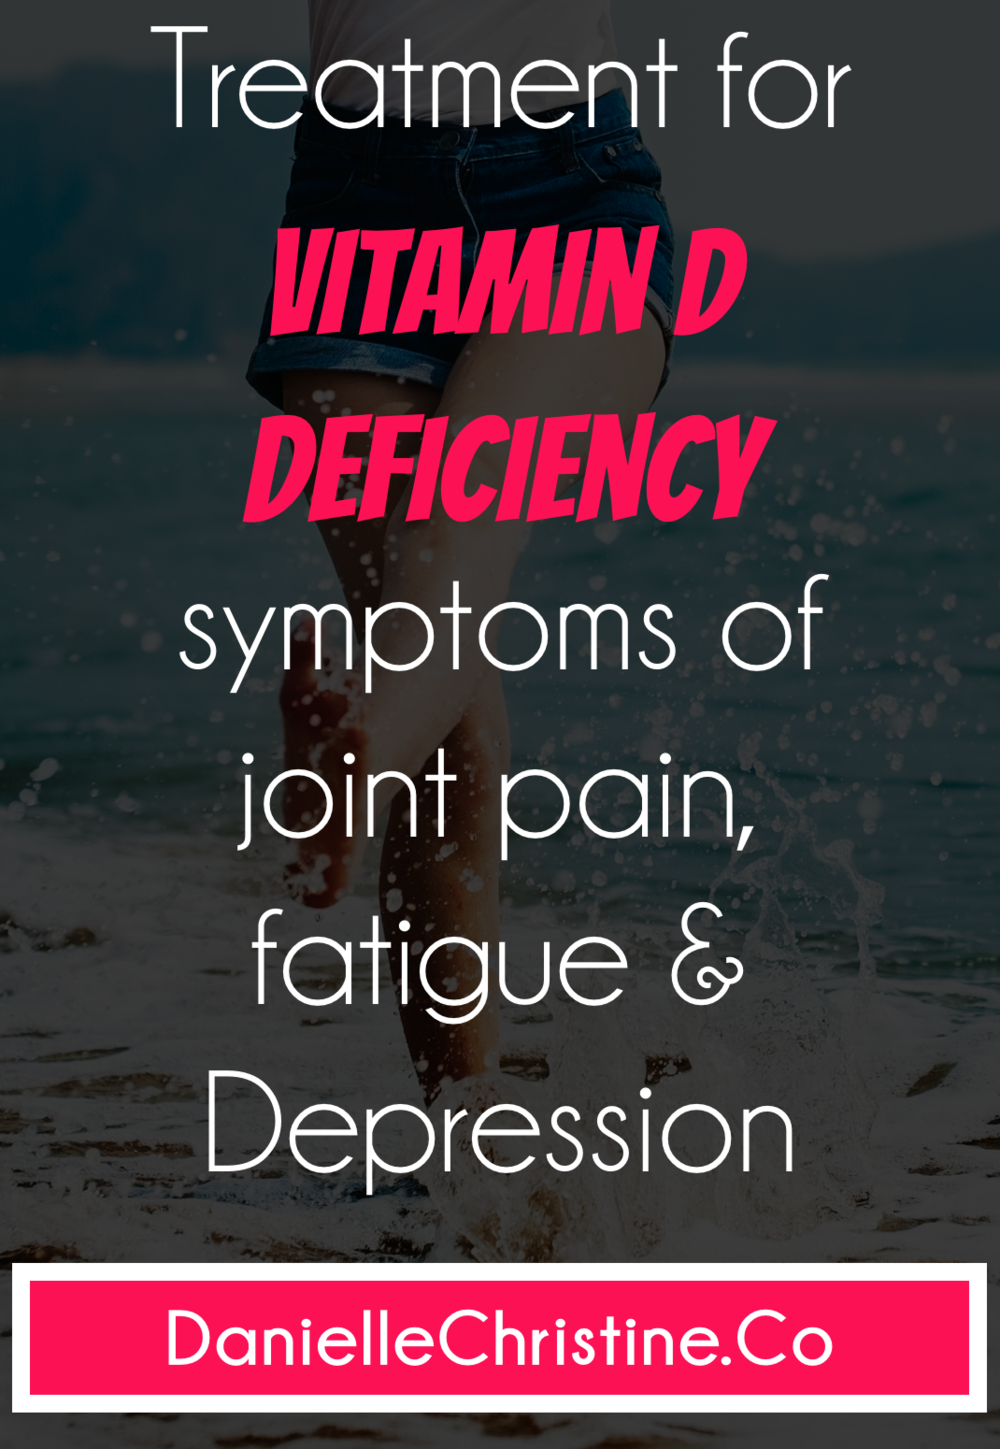 vitamin-d-deficiency-symptoms-fatigue-joint-pain-depression-treatment